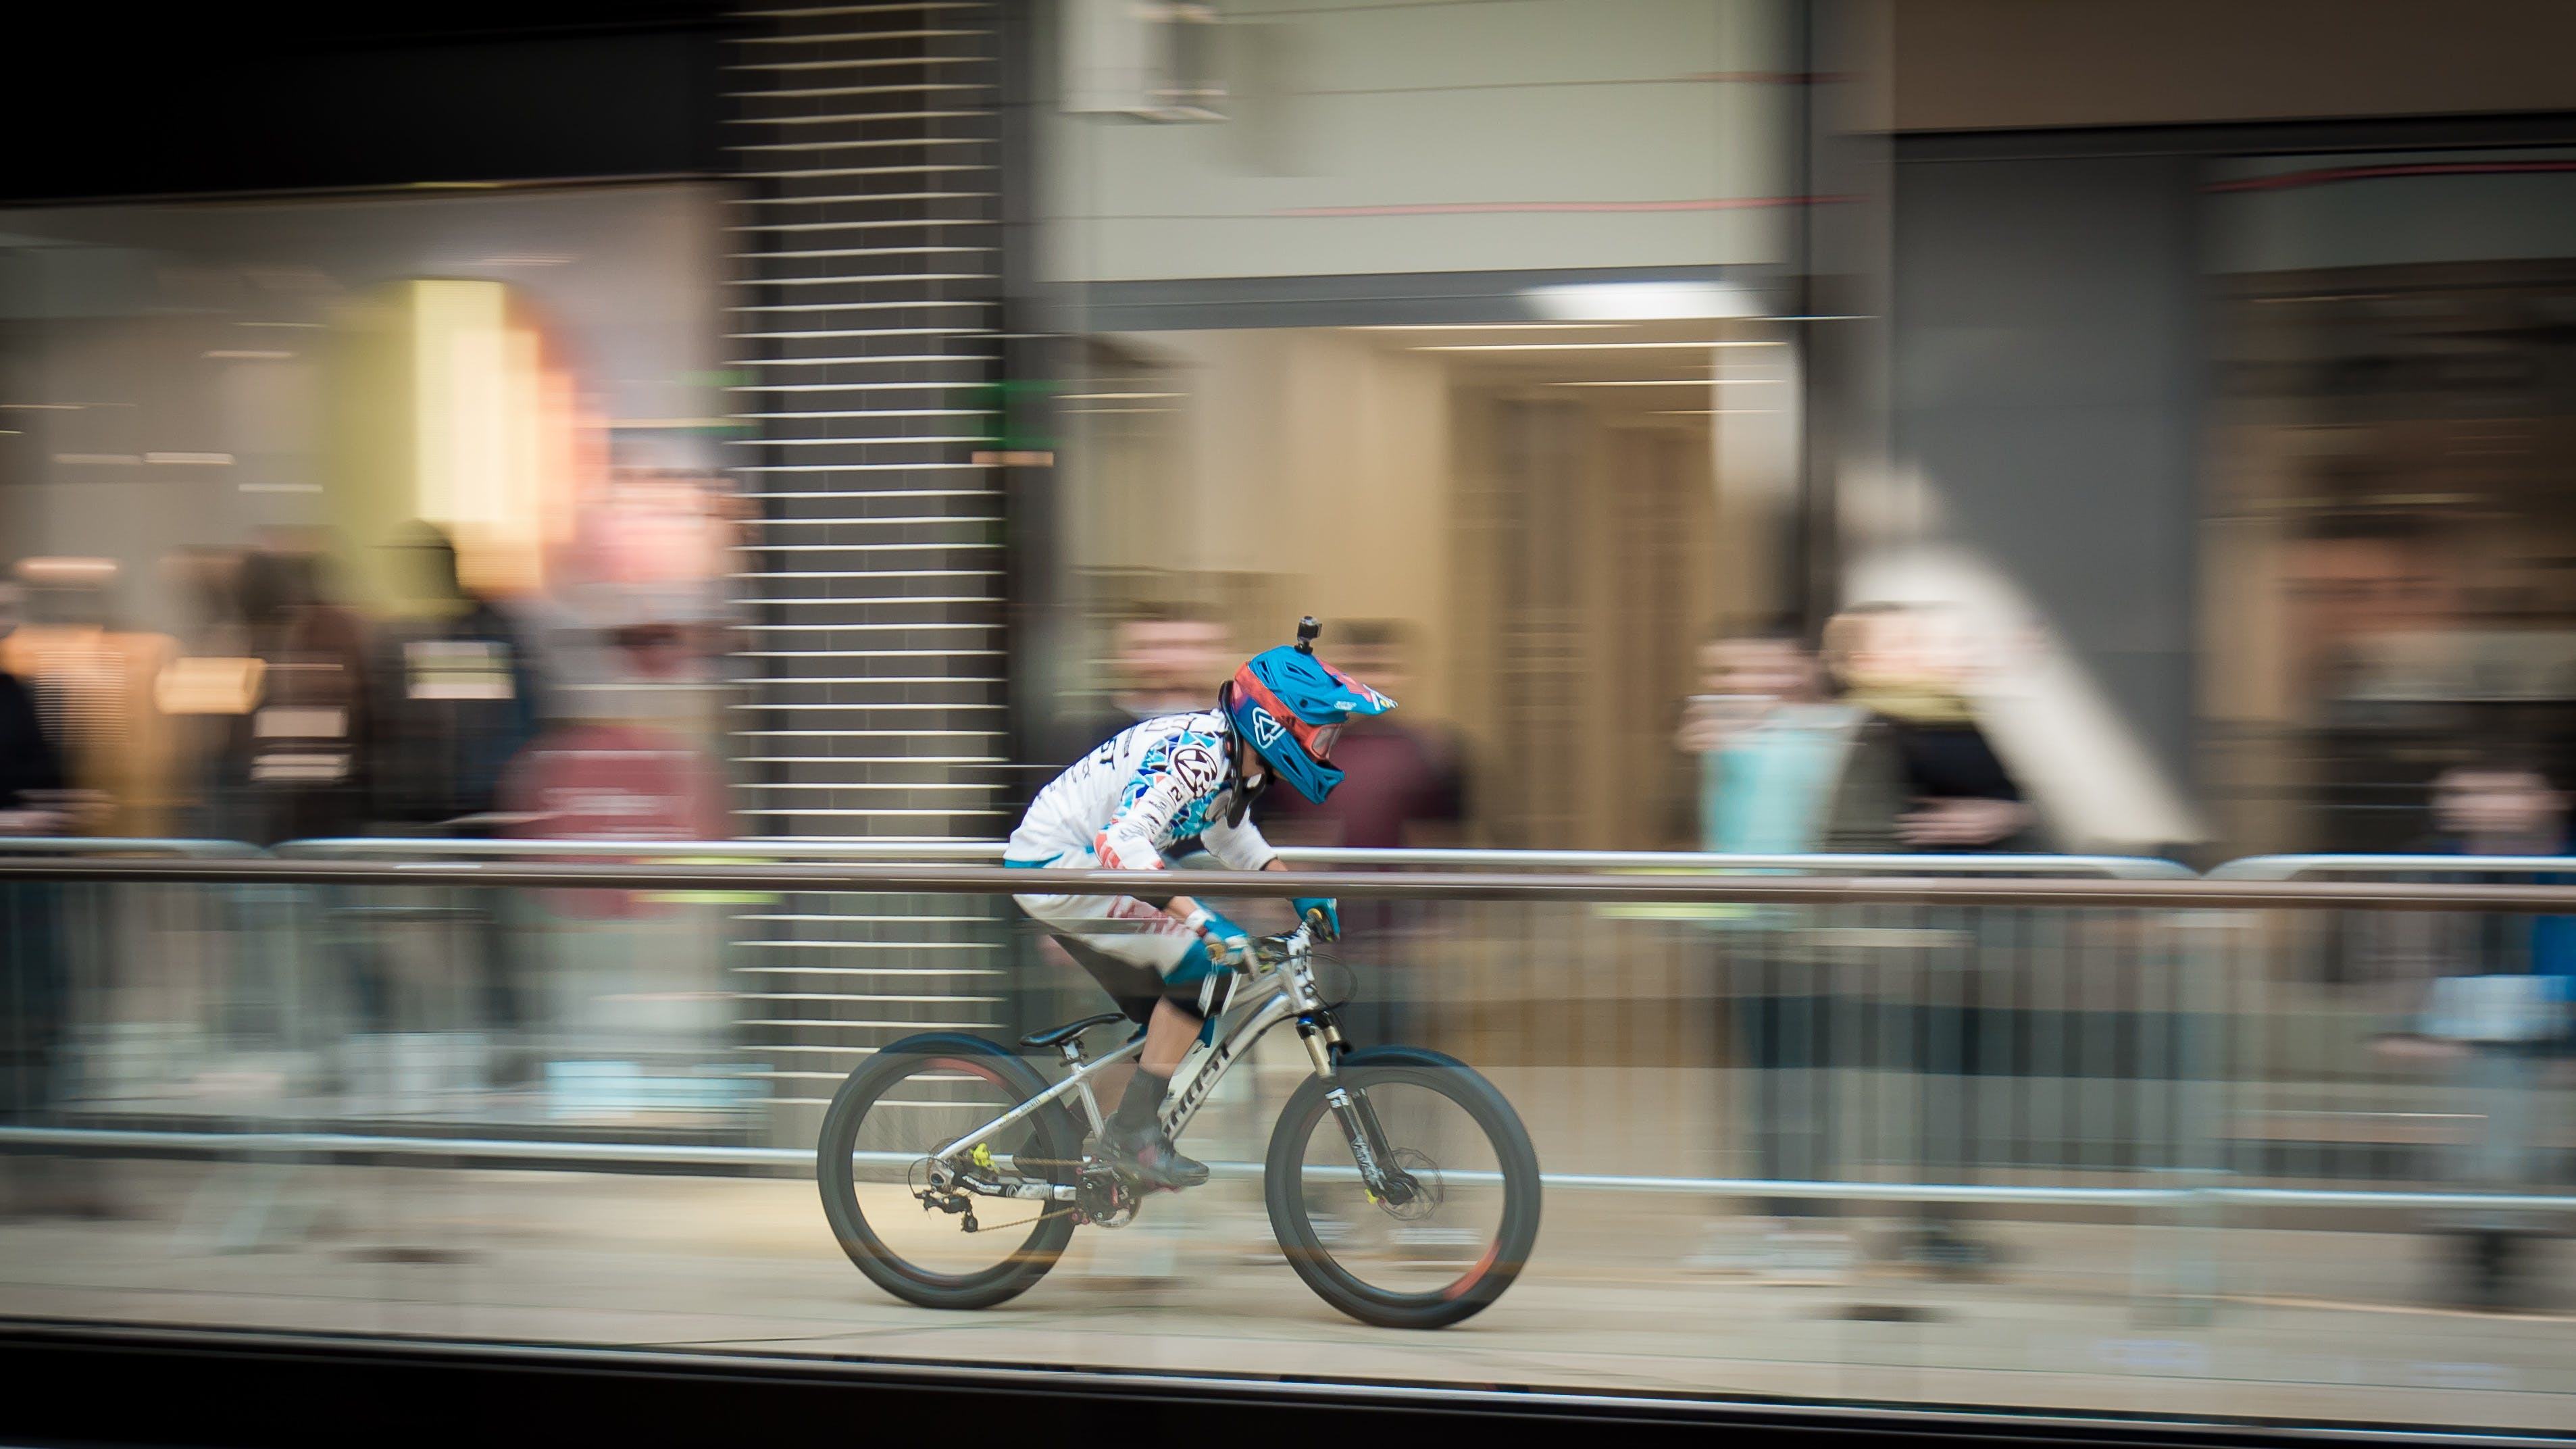 Time-lapse Photography of Man Riding Bicycle